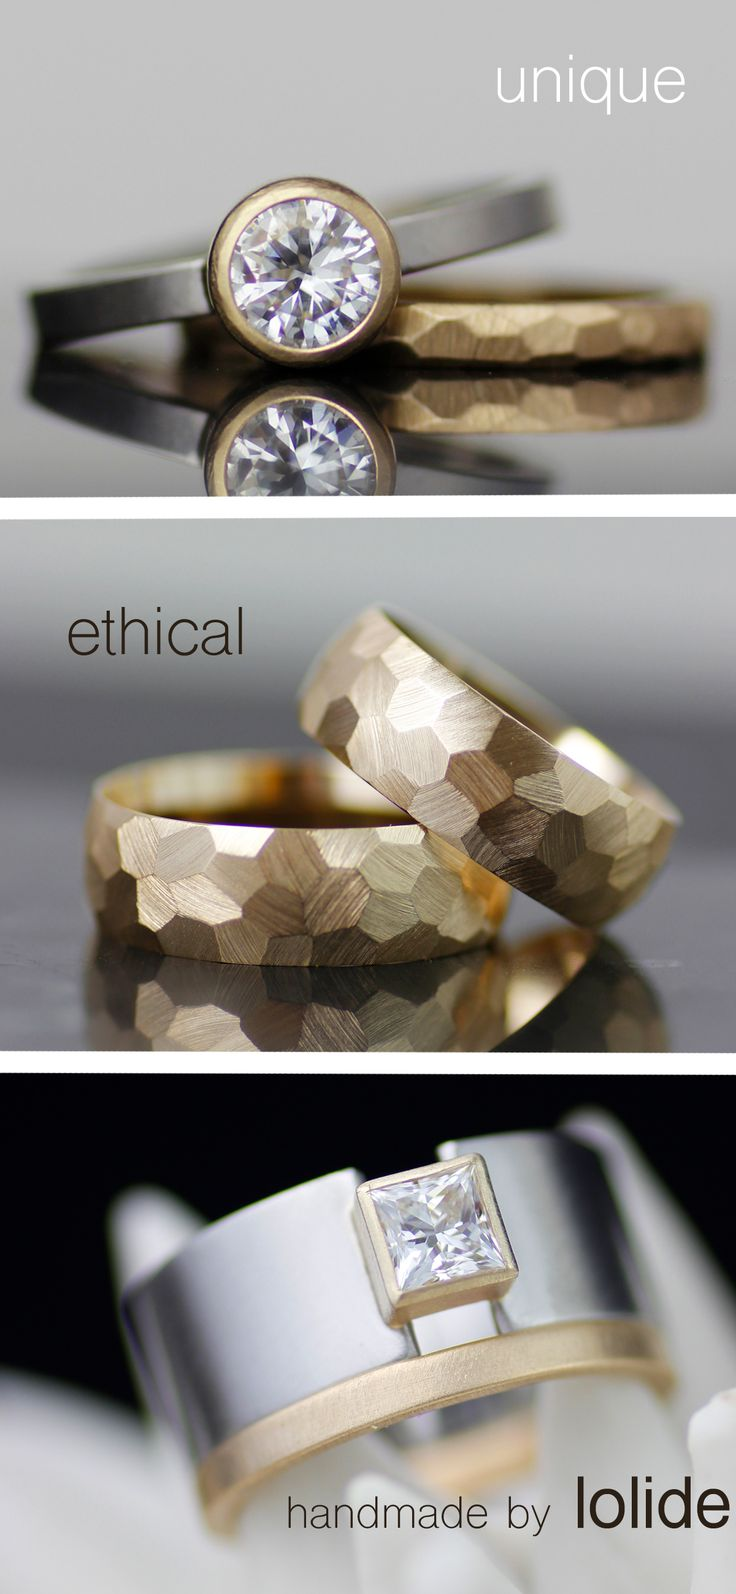 Custom wedding and engagement rings, handmade just for you by lolide